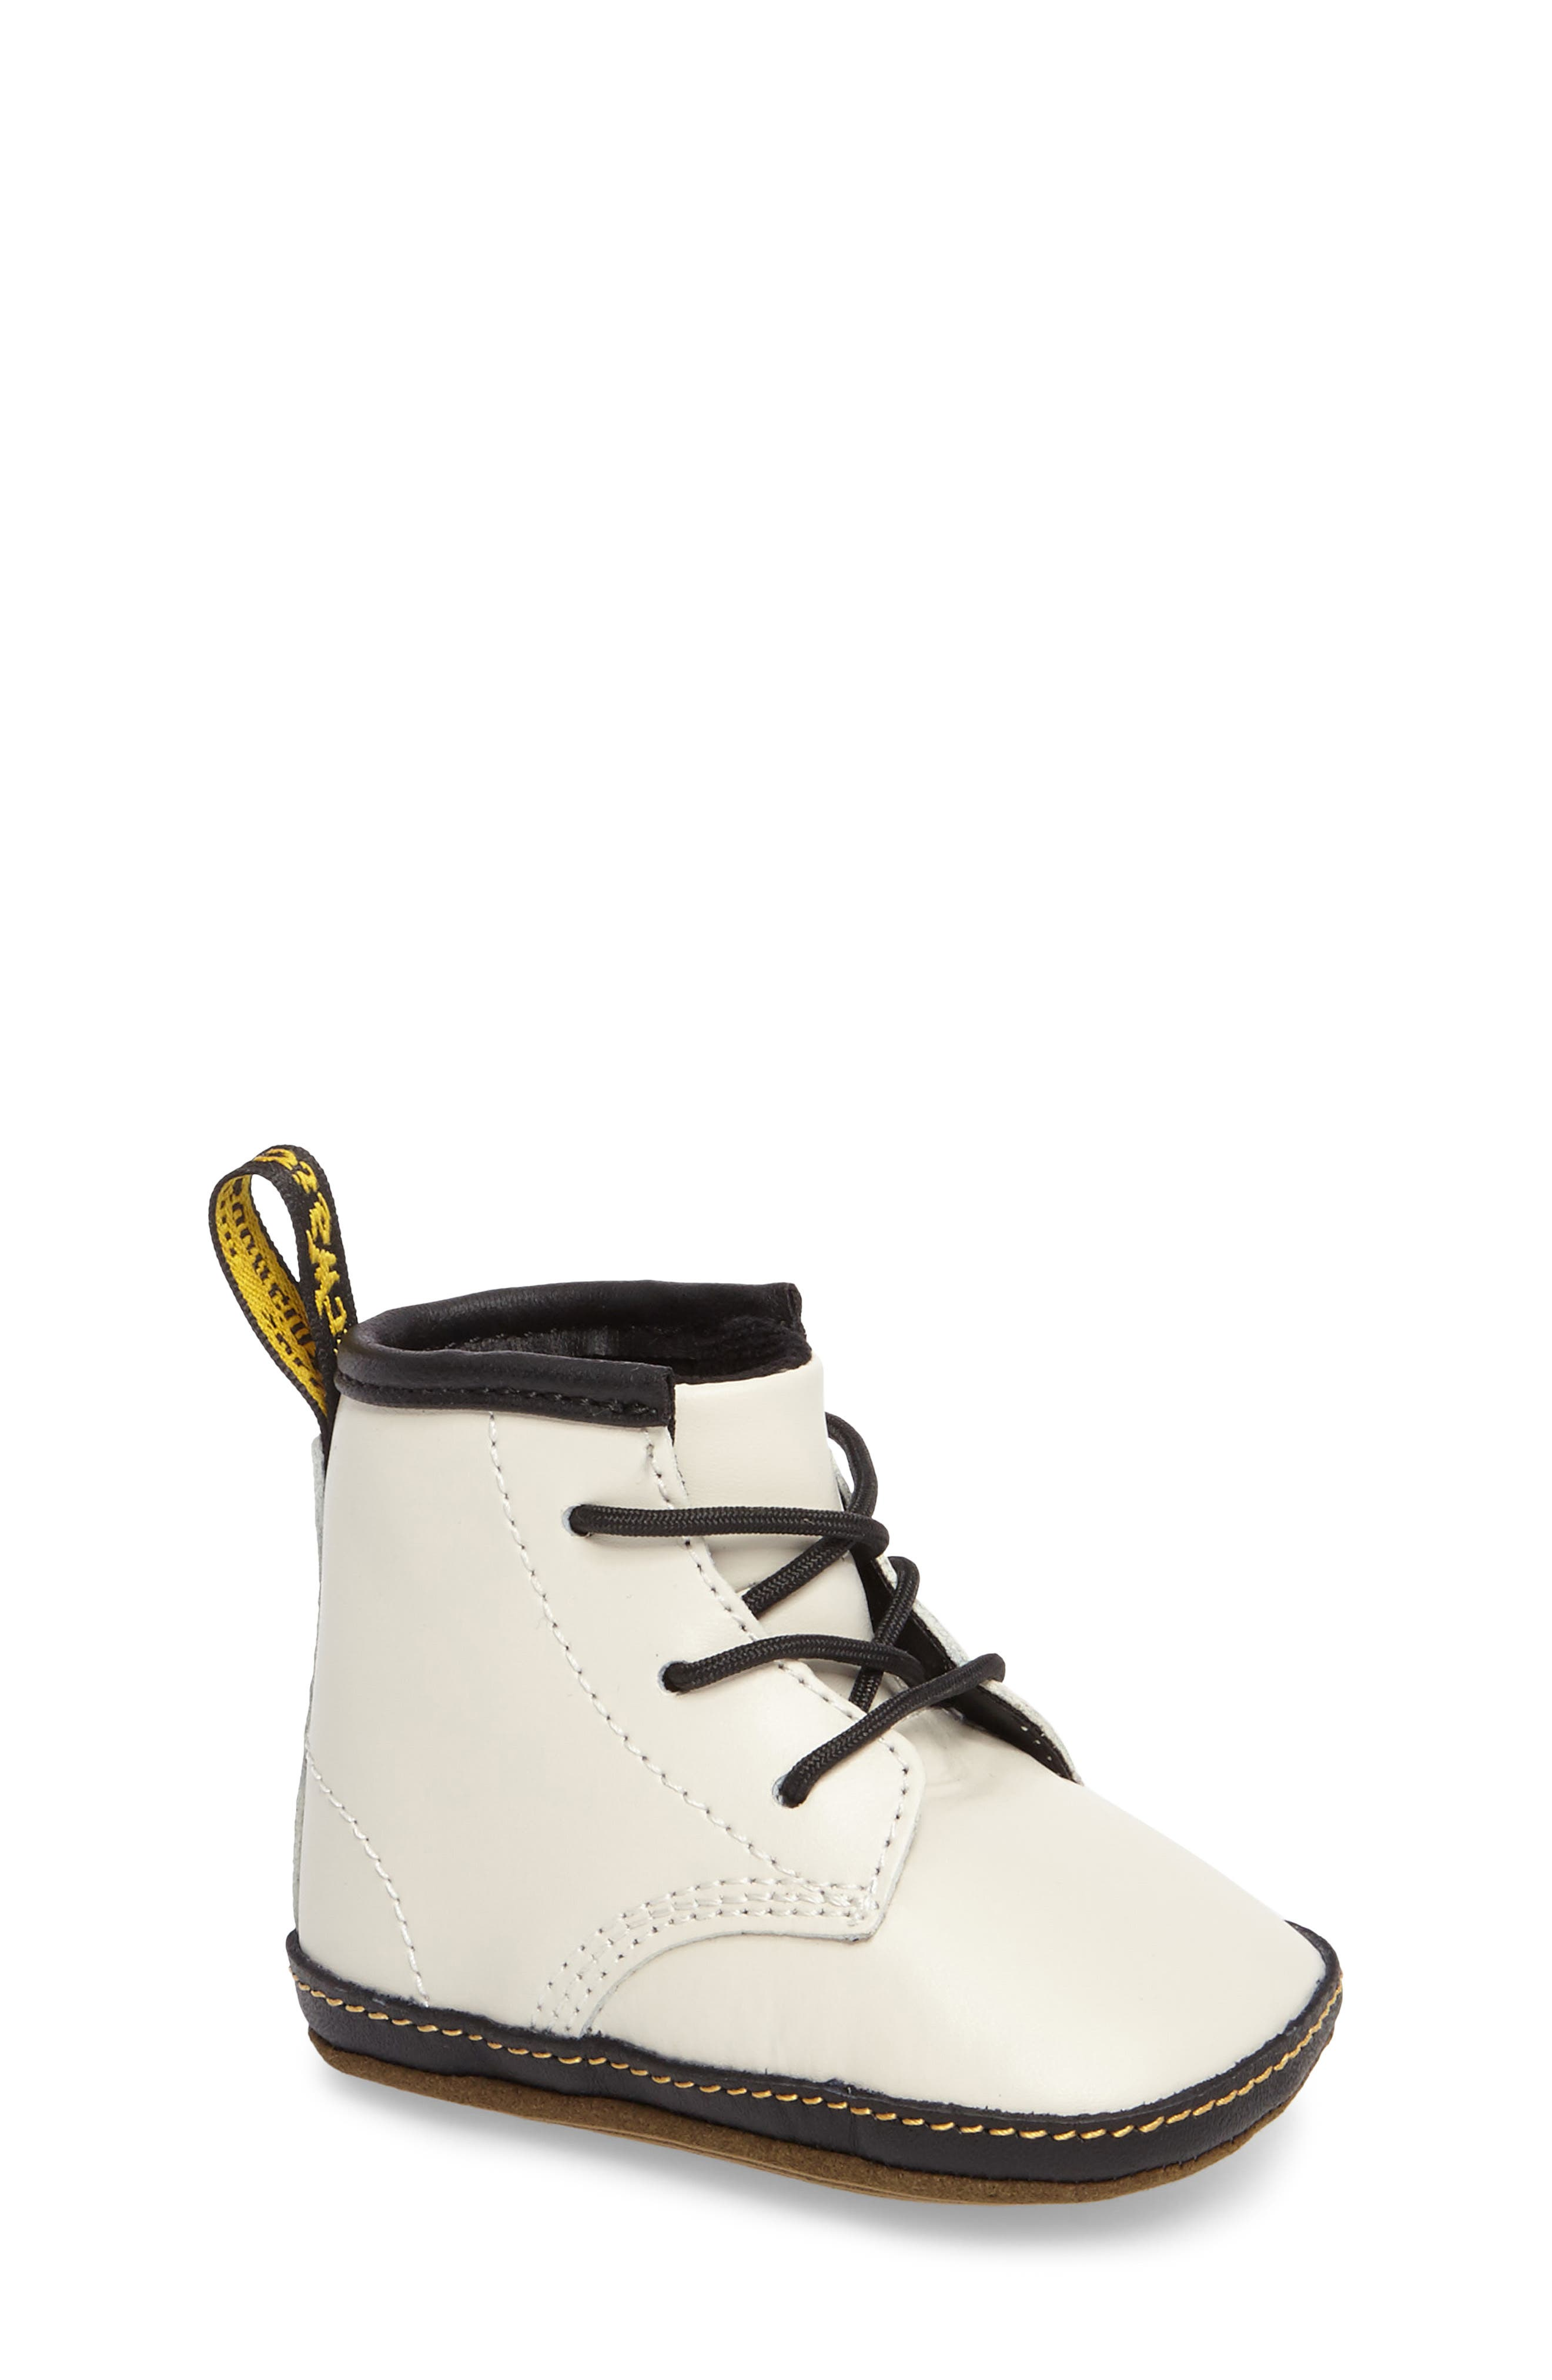 Main Image - Dr. Martens Auburn Crib Bootie (Baby)